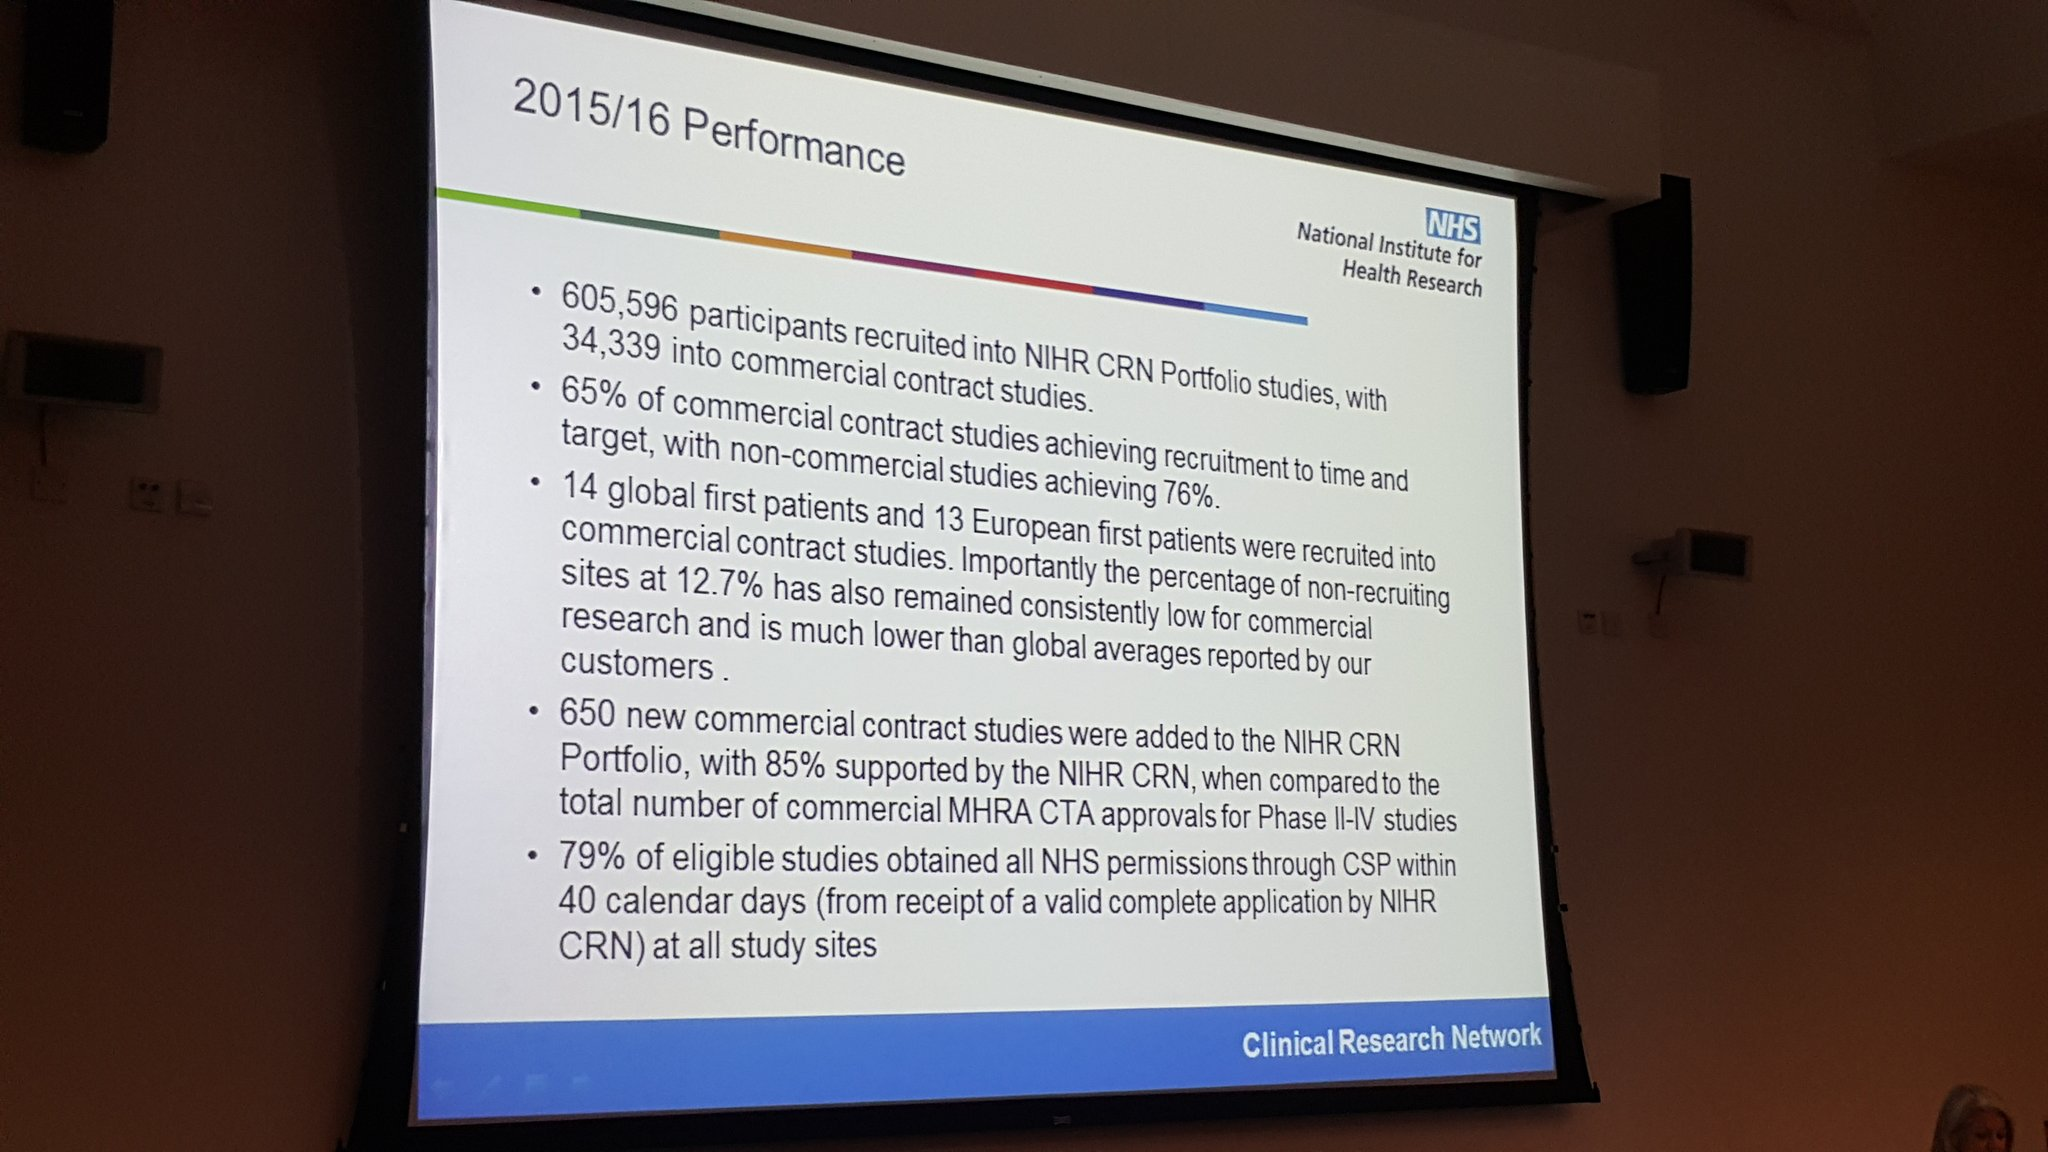 Amazing stats being shown by @dollyblue3 @OfficialNIHR at #CBRsymp16 WOW! #whywedoresearch @CambridgeBRC https://t.co/gS09Z2Y3B6